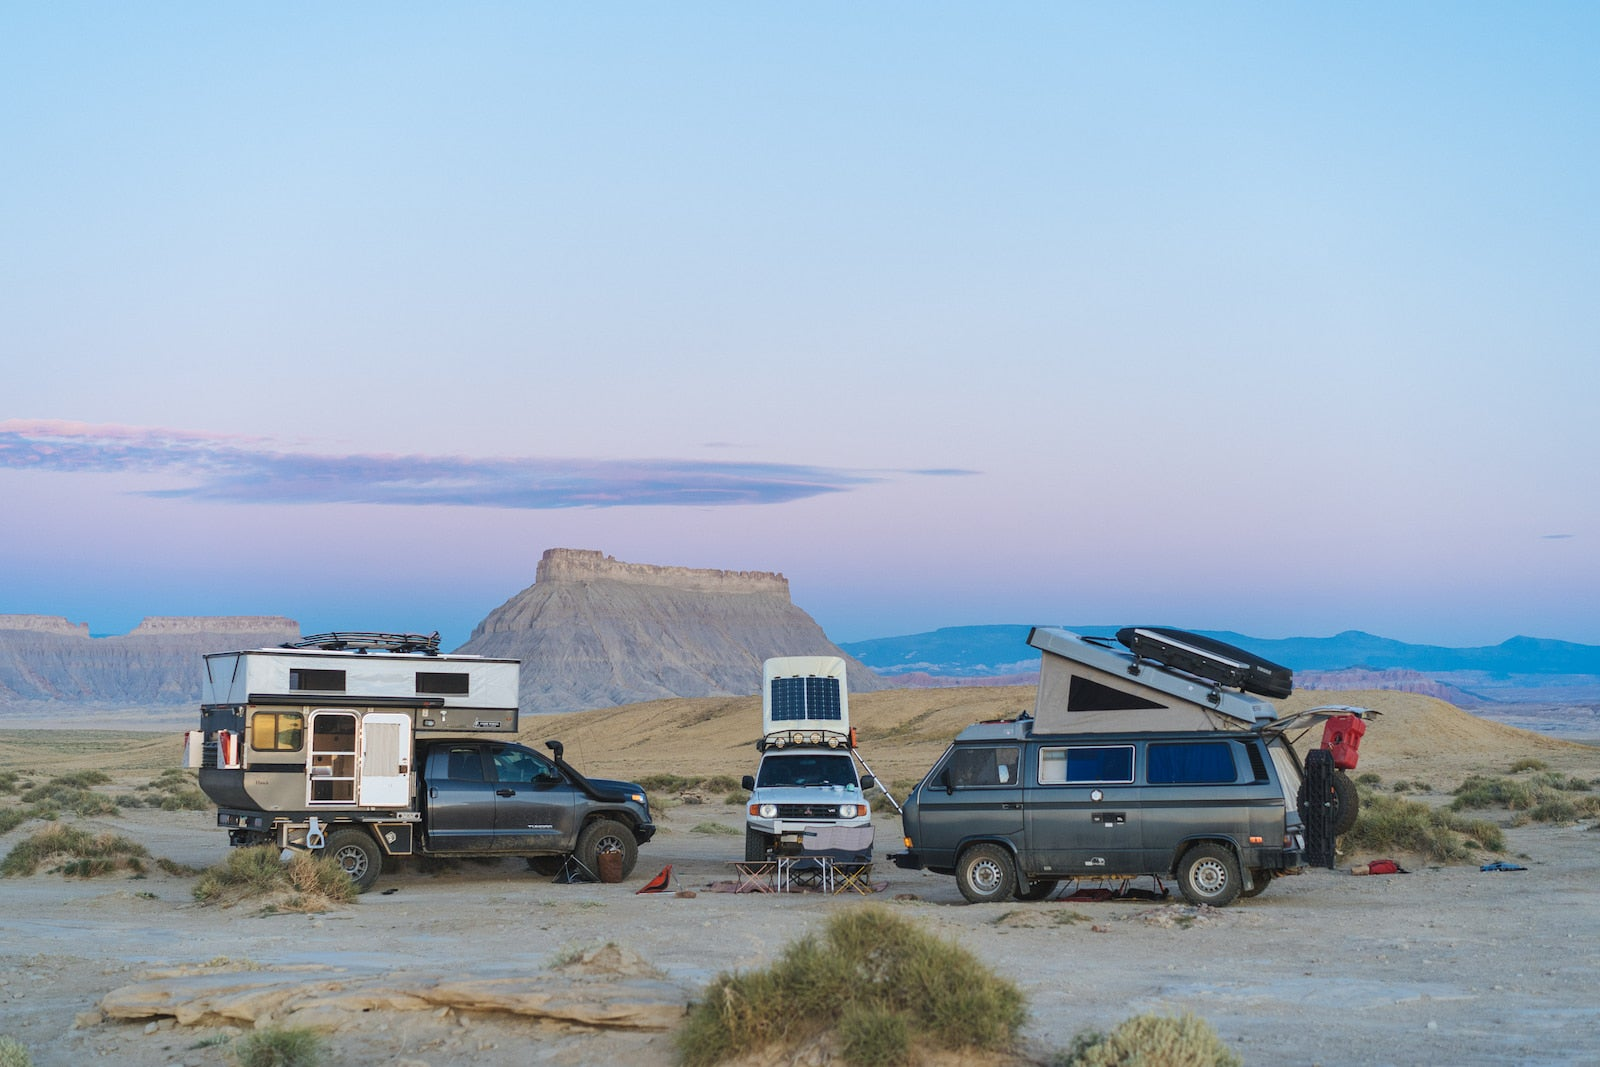 Bound for nowhre's rig parked next to two VW vans surrounded by the desert and rock formations.